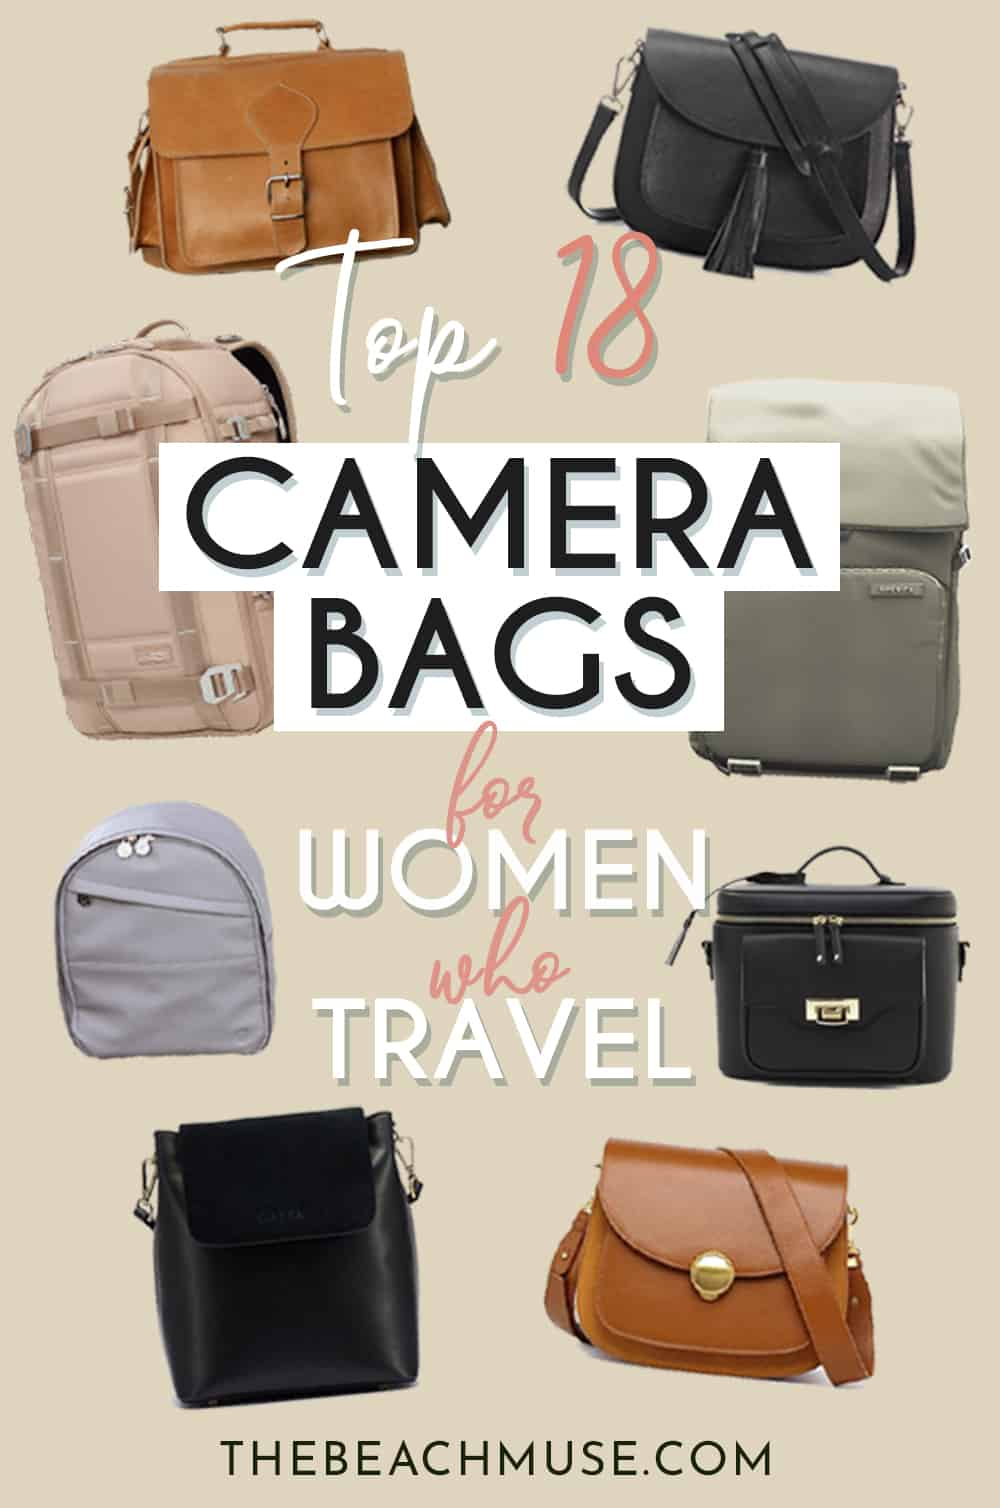 TOP 18 camera bags for women who travel